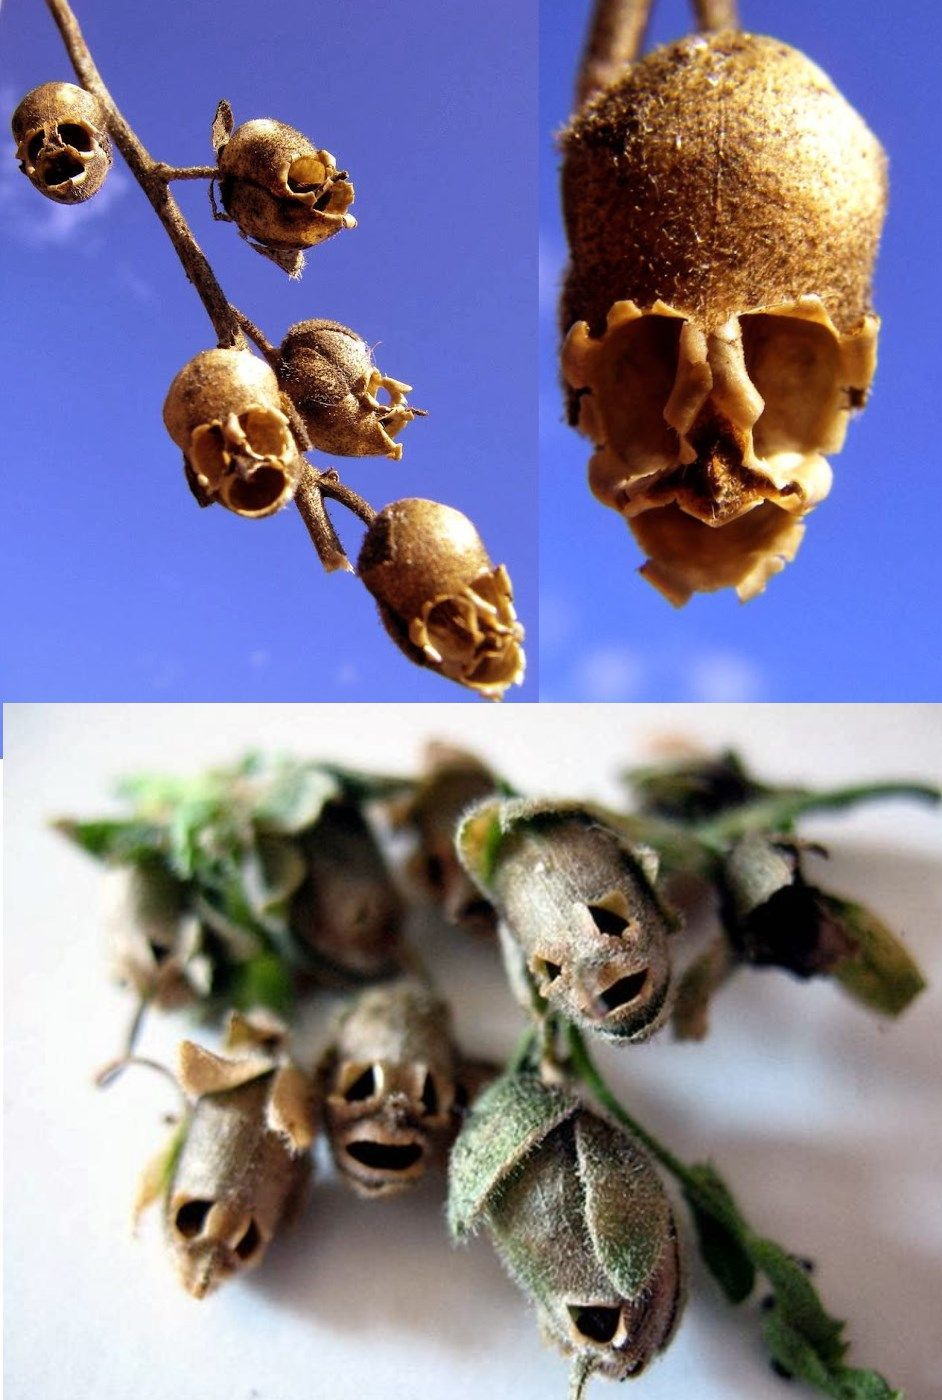 The Skull Shaped Snapdragon Flower Dragonantirrhinum Majus Seed